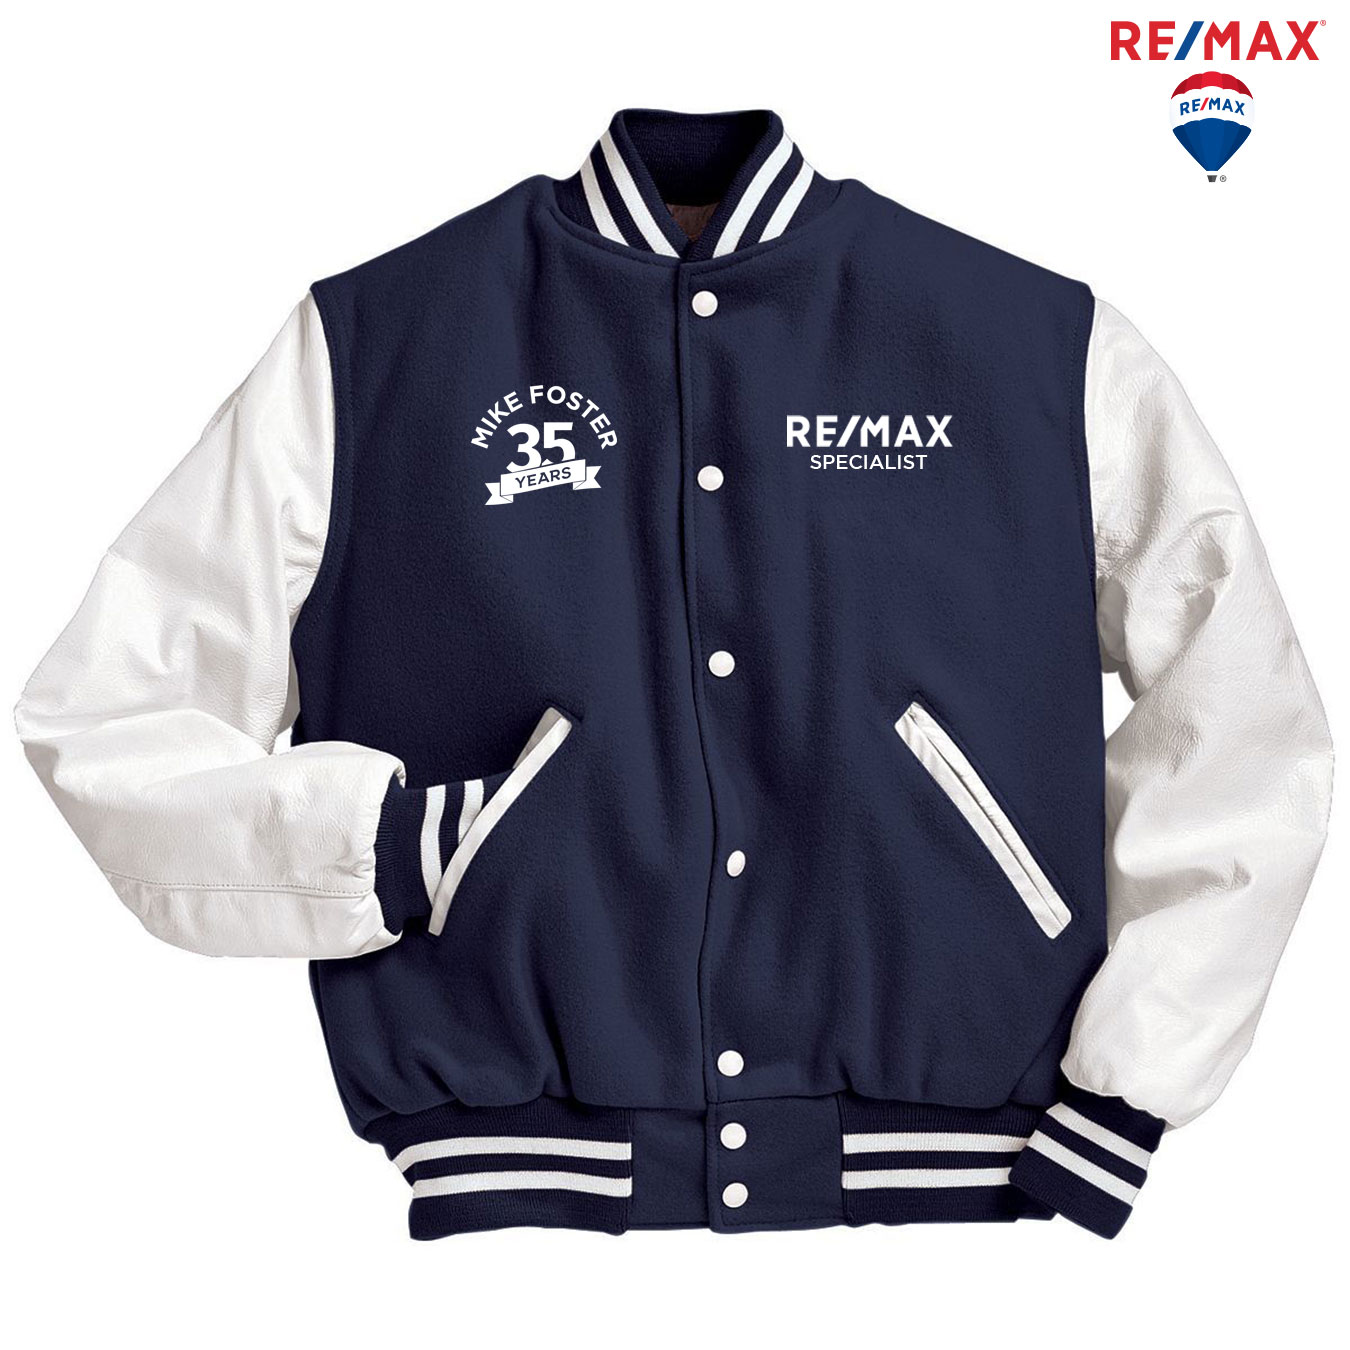 Adult Varsity Jacket - THE ANNIVERSARY/AWARDS JACKET COLLECTION